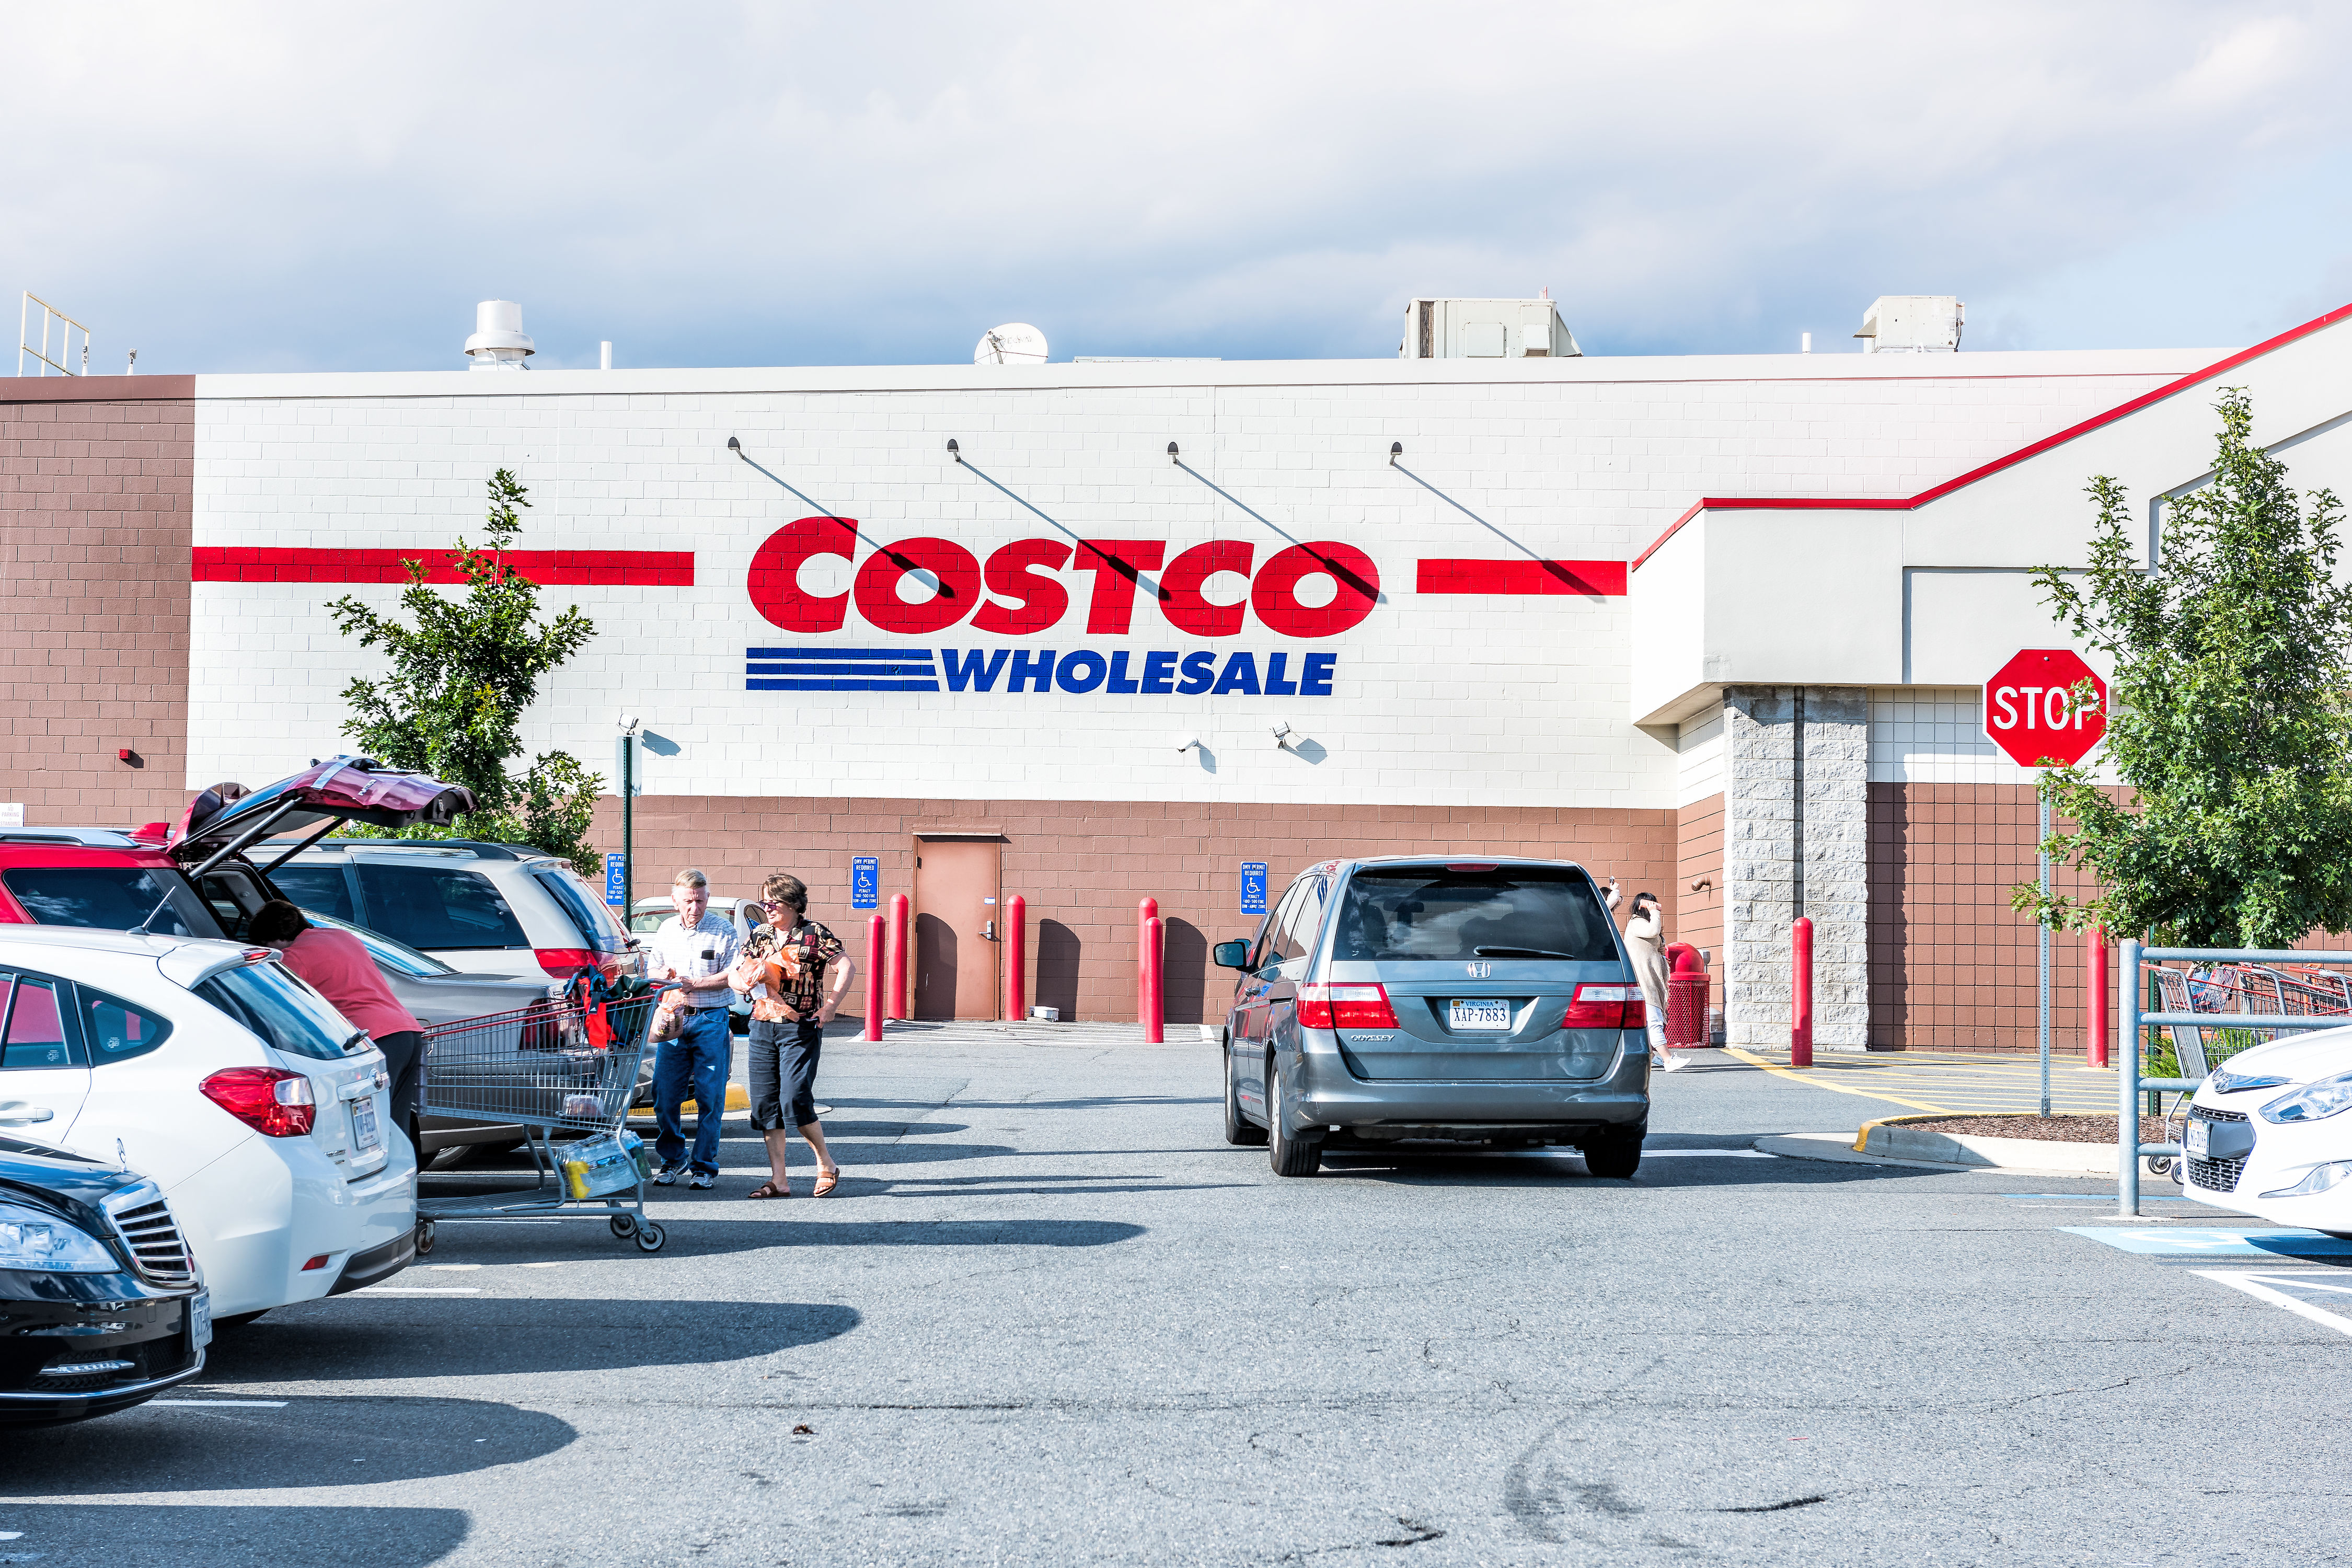 WATCH: This Is a Costco Manager's Annual Salary